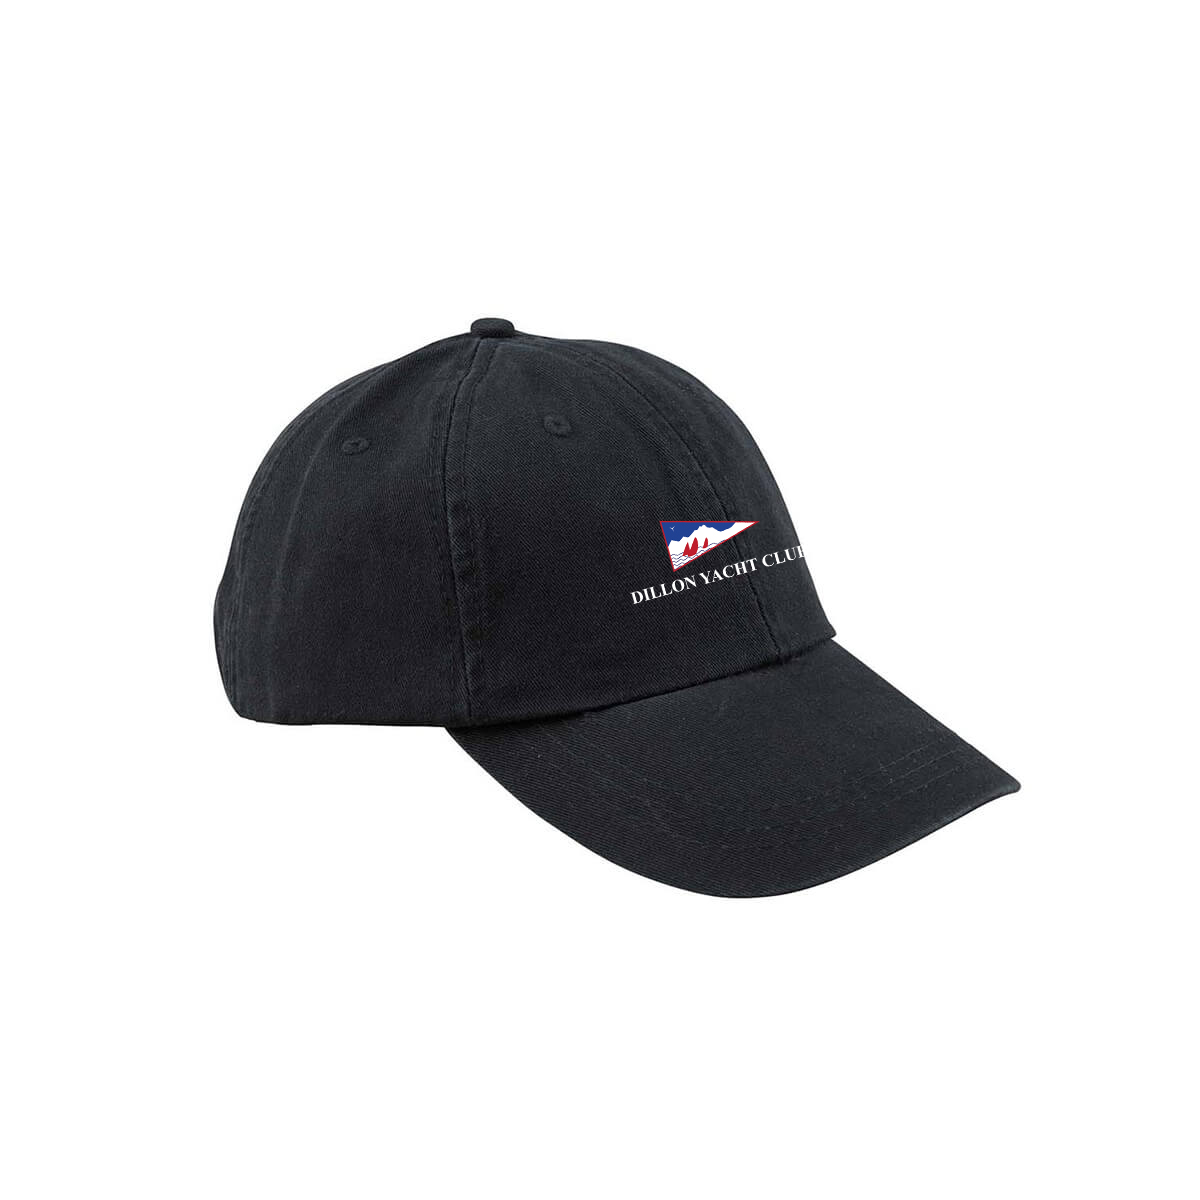 Dillon Yacht Club - HAT